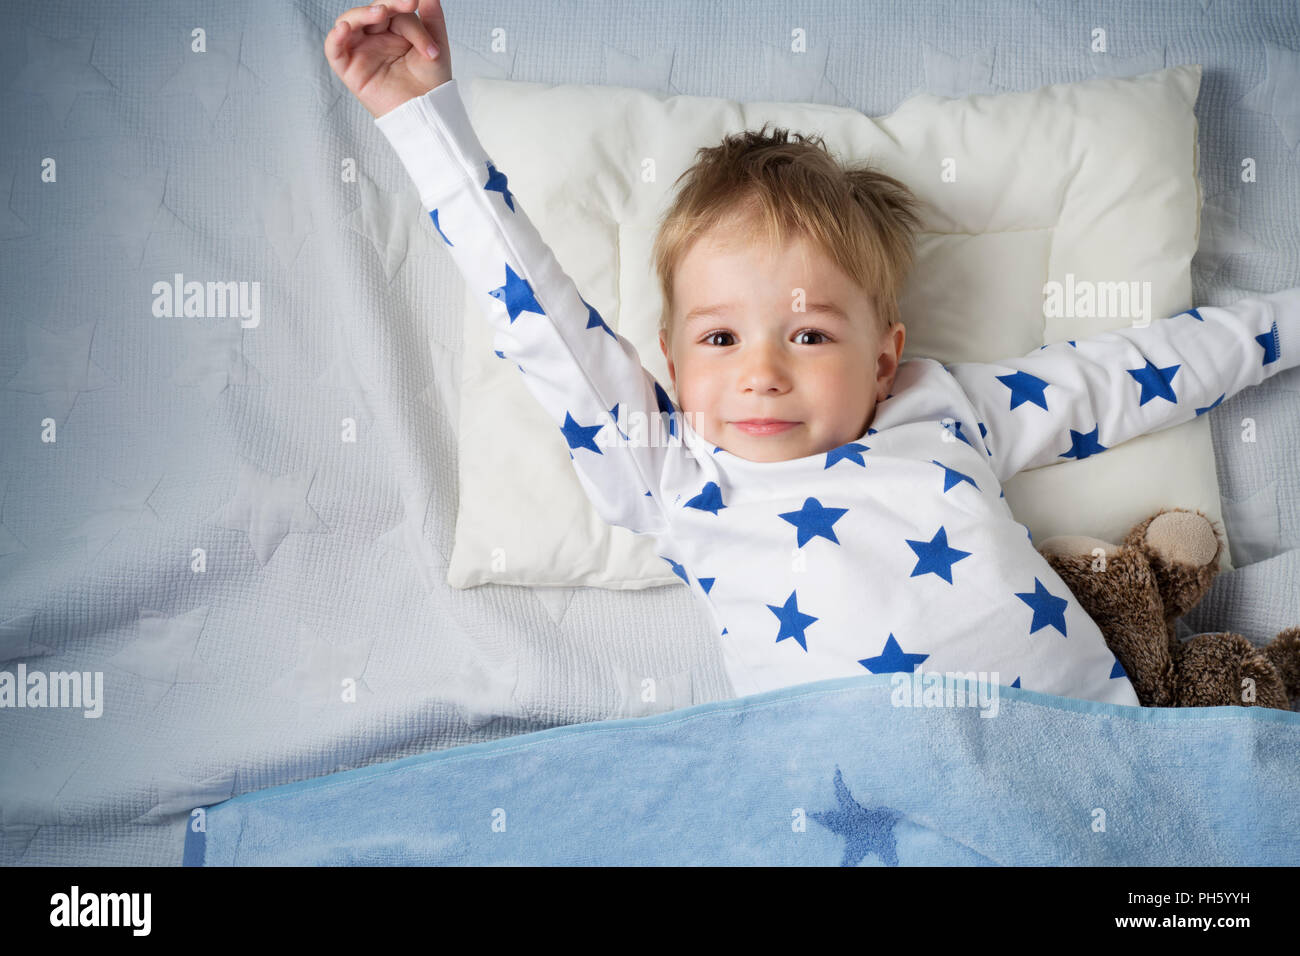 three years old child sleeping in bed - Stock Image